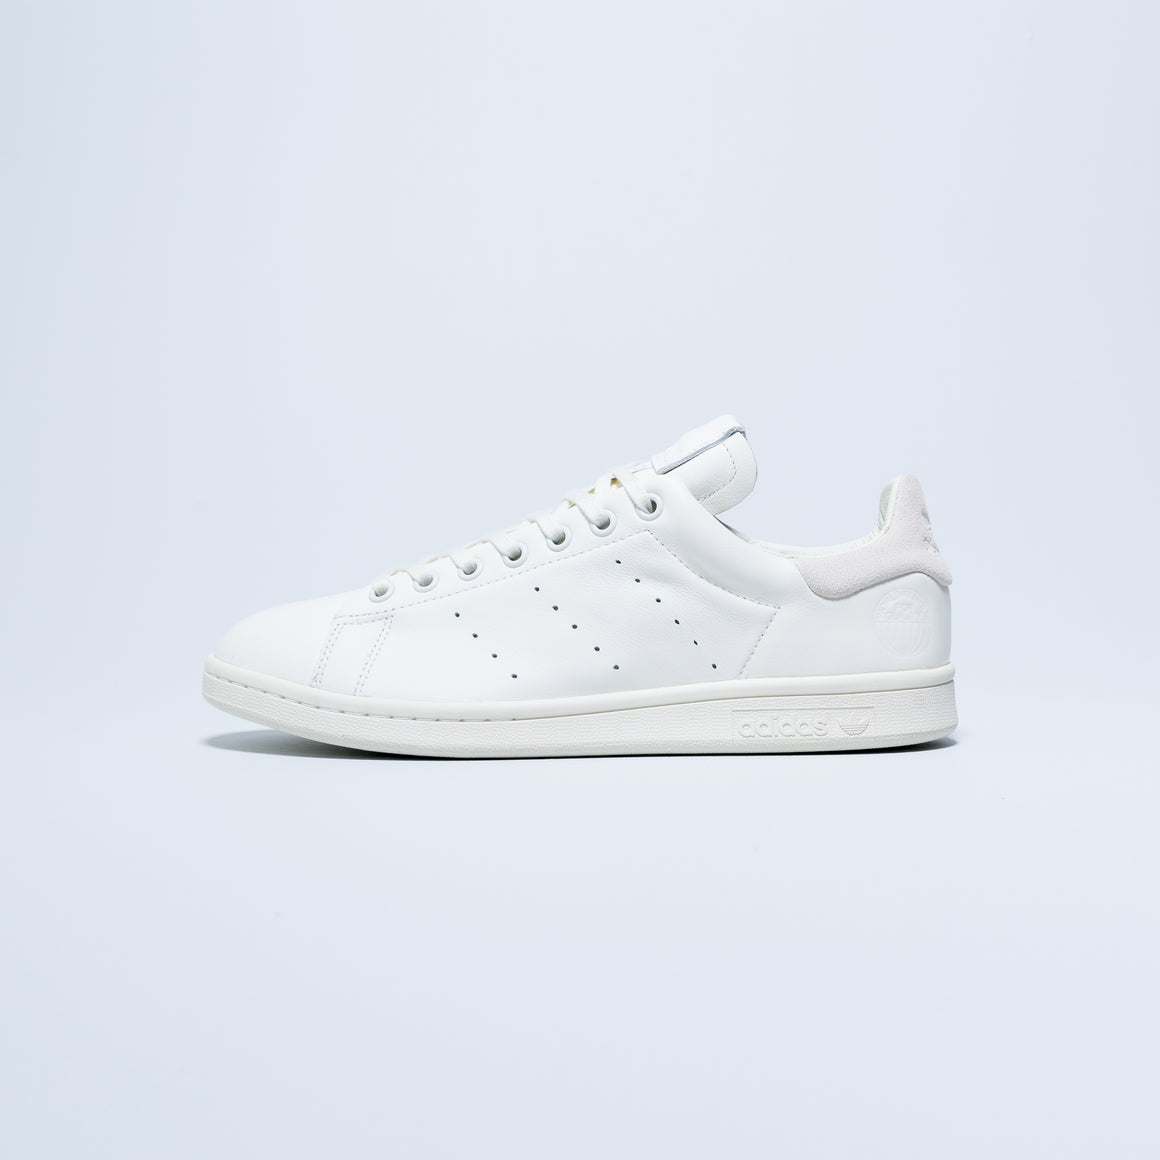 Stan Smith Recon - Off White/Off White - Up There